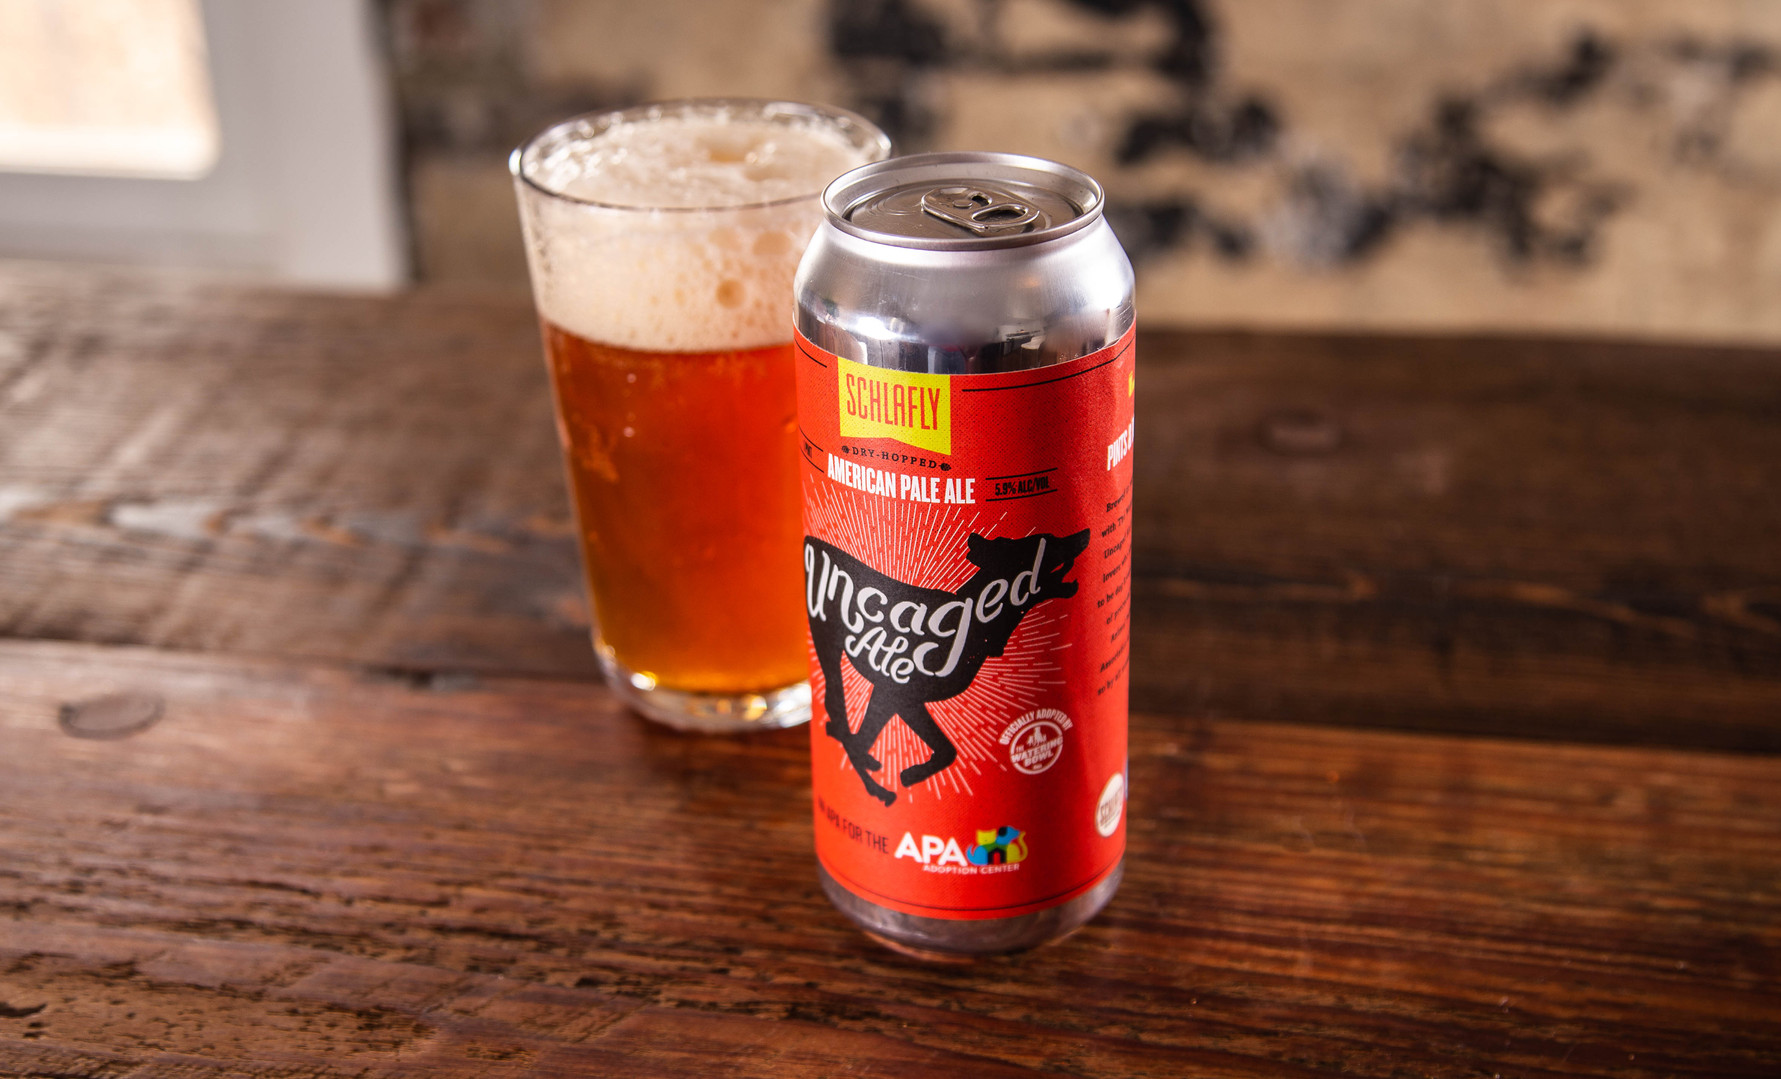 Schlafly Uncaged Ale Packaging, Pour